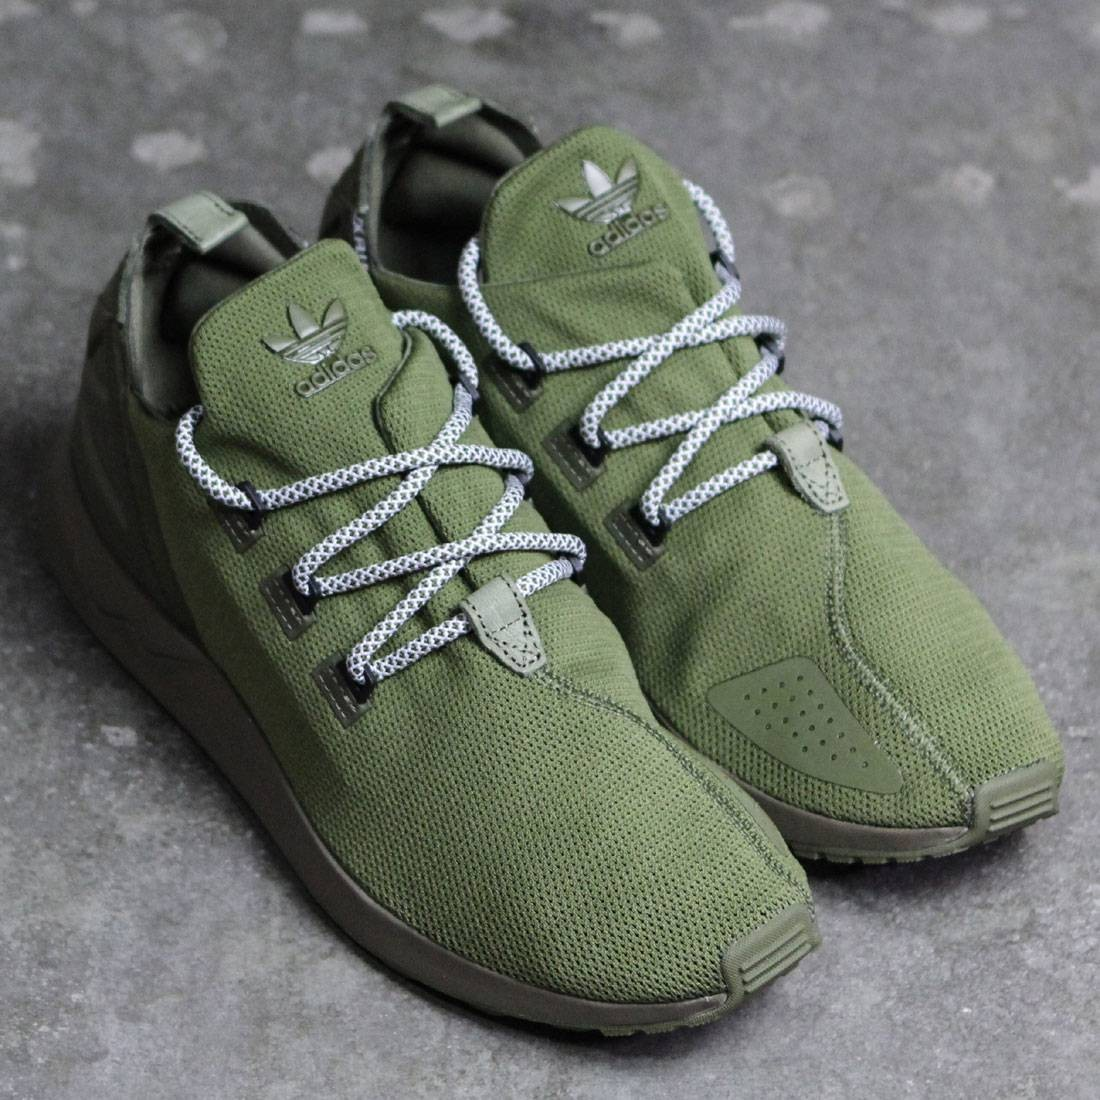 new products 879fa 134e1 Adidas Men ZX Flux ADV X (olive / olive cargo / core black / footwear white)